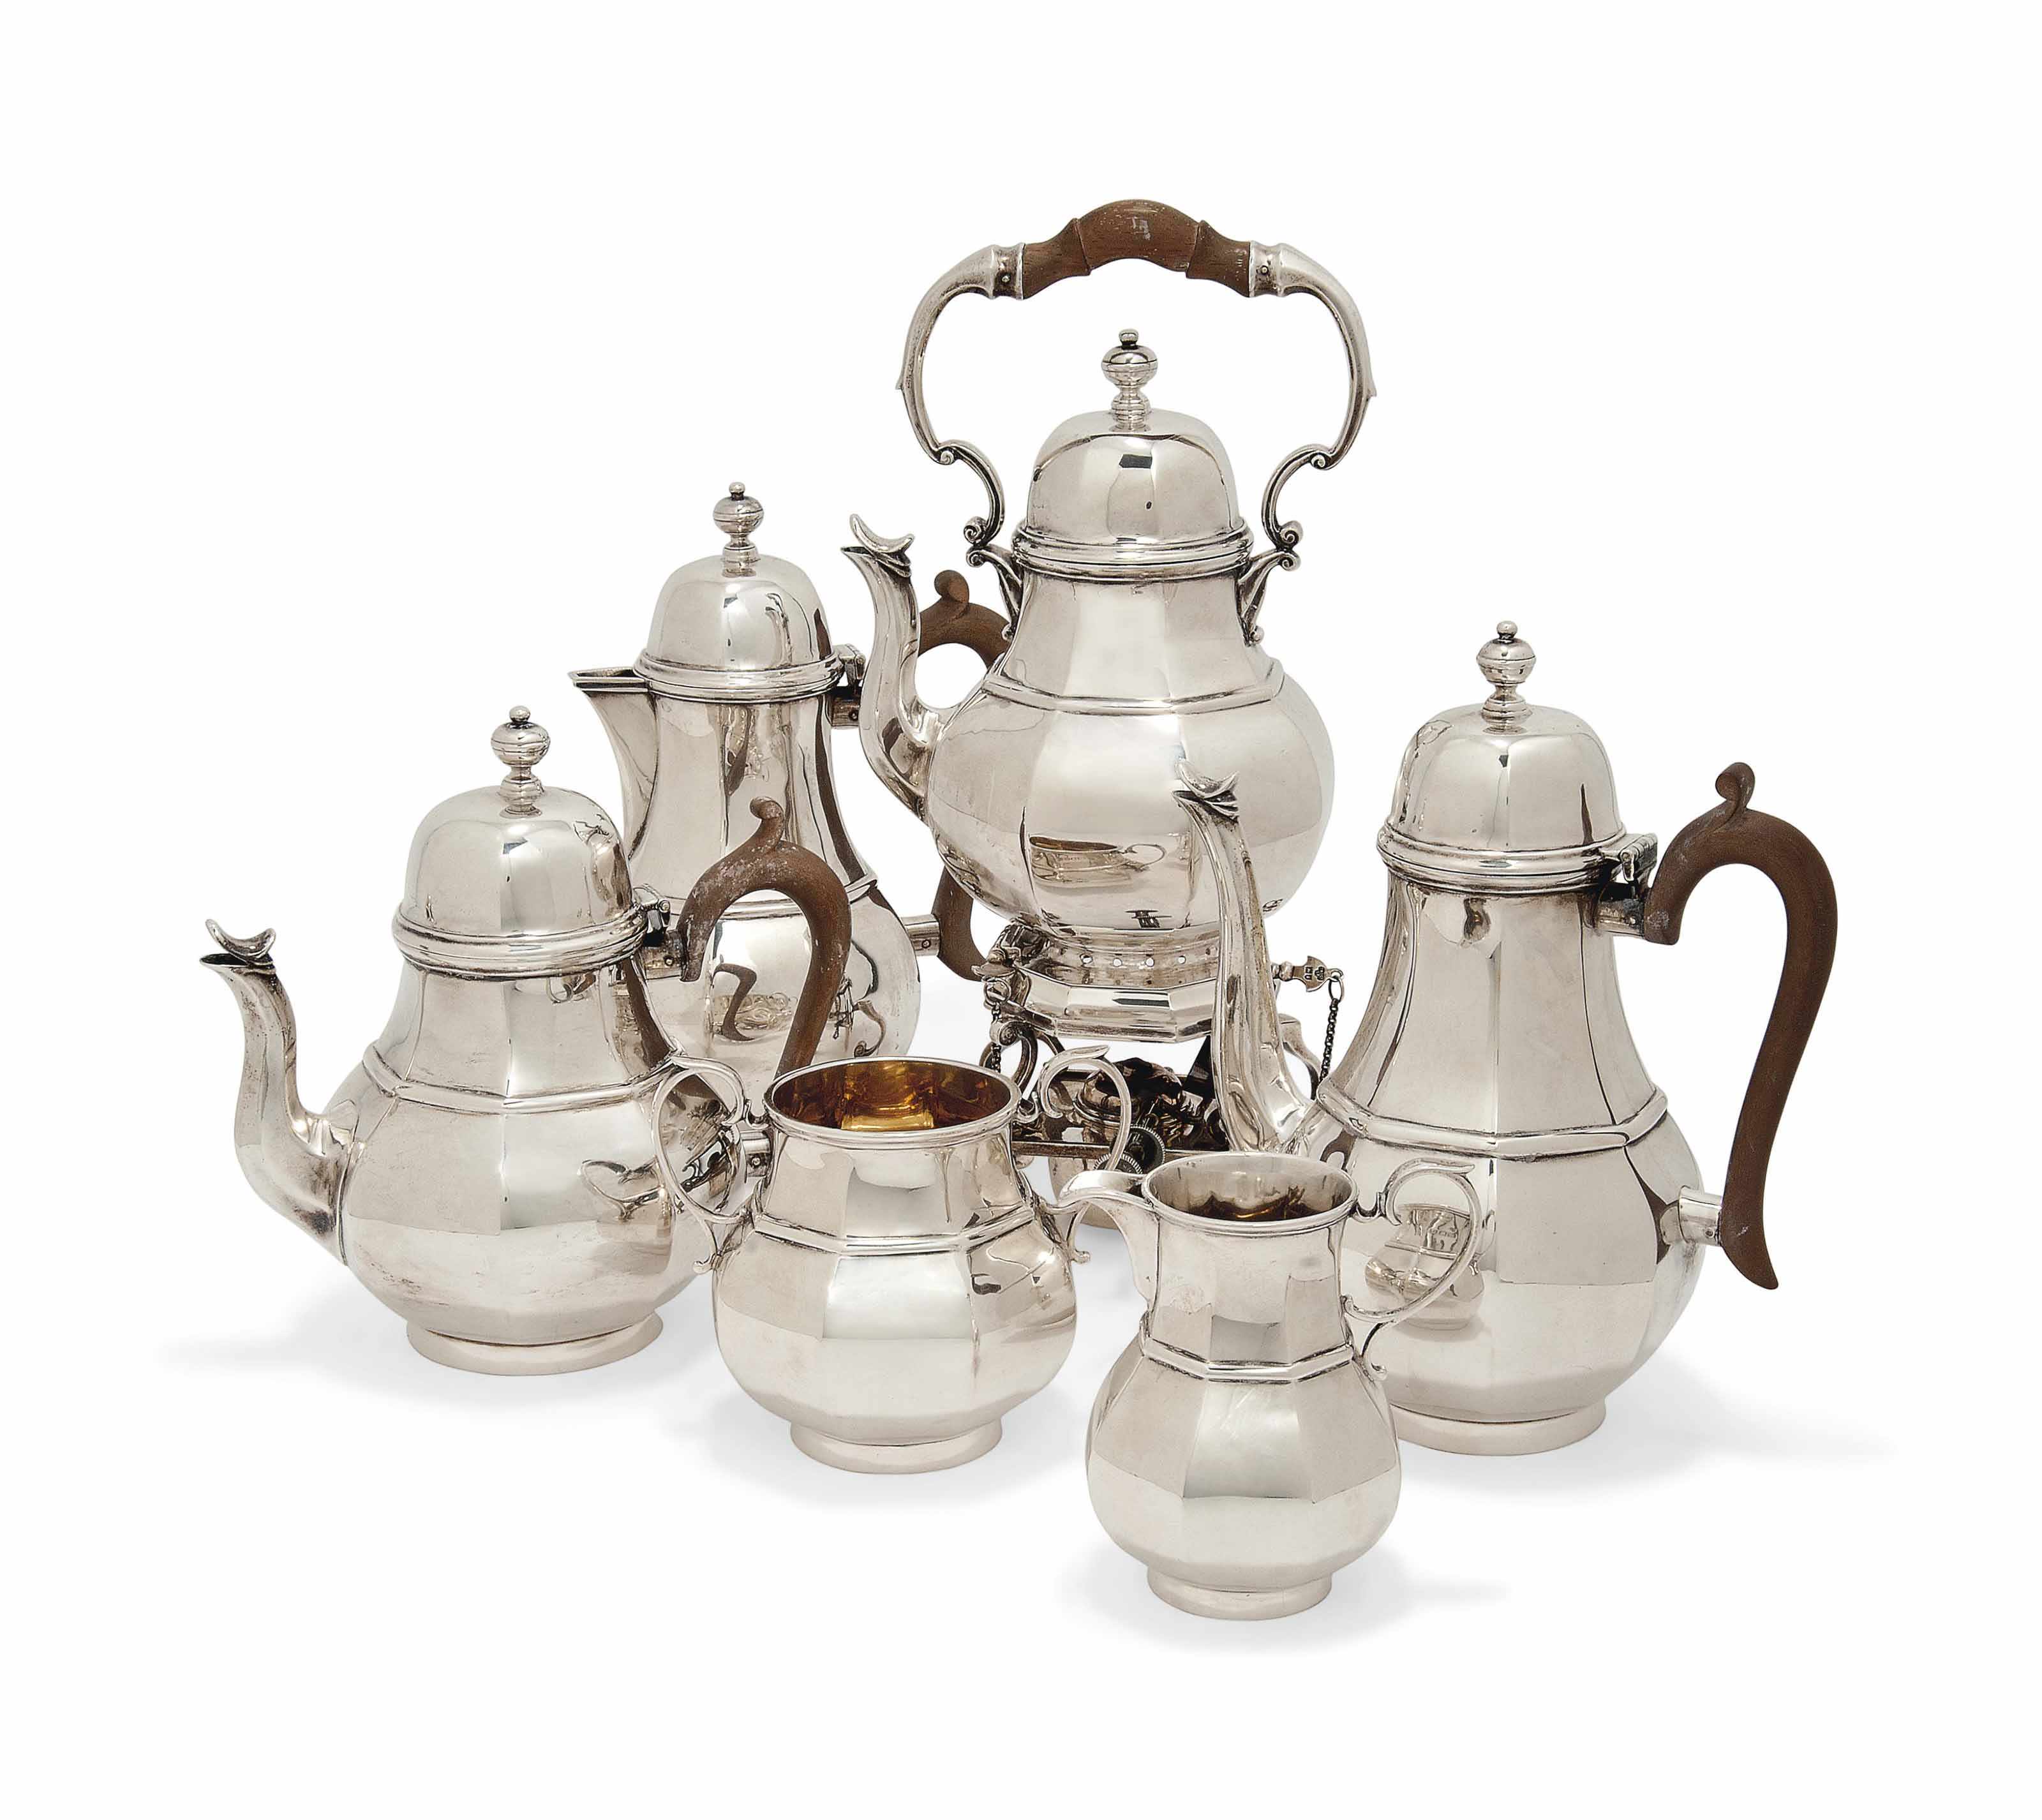 A SIX-PIECE SILVER TEA AND COFFEE SERVICE IN QUEEN ANNE STYLE